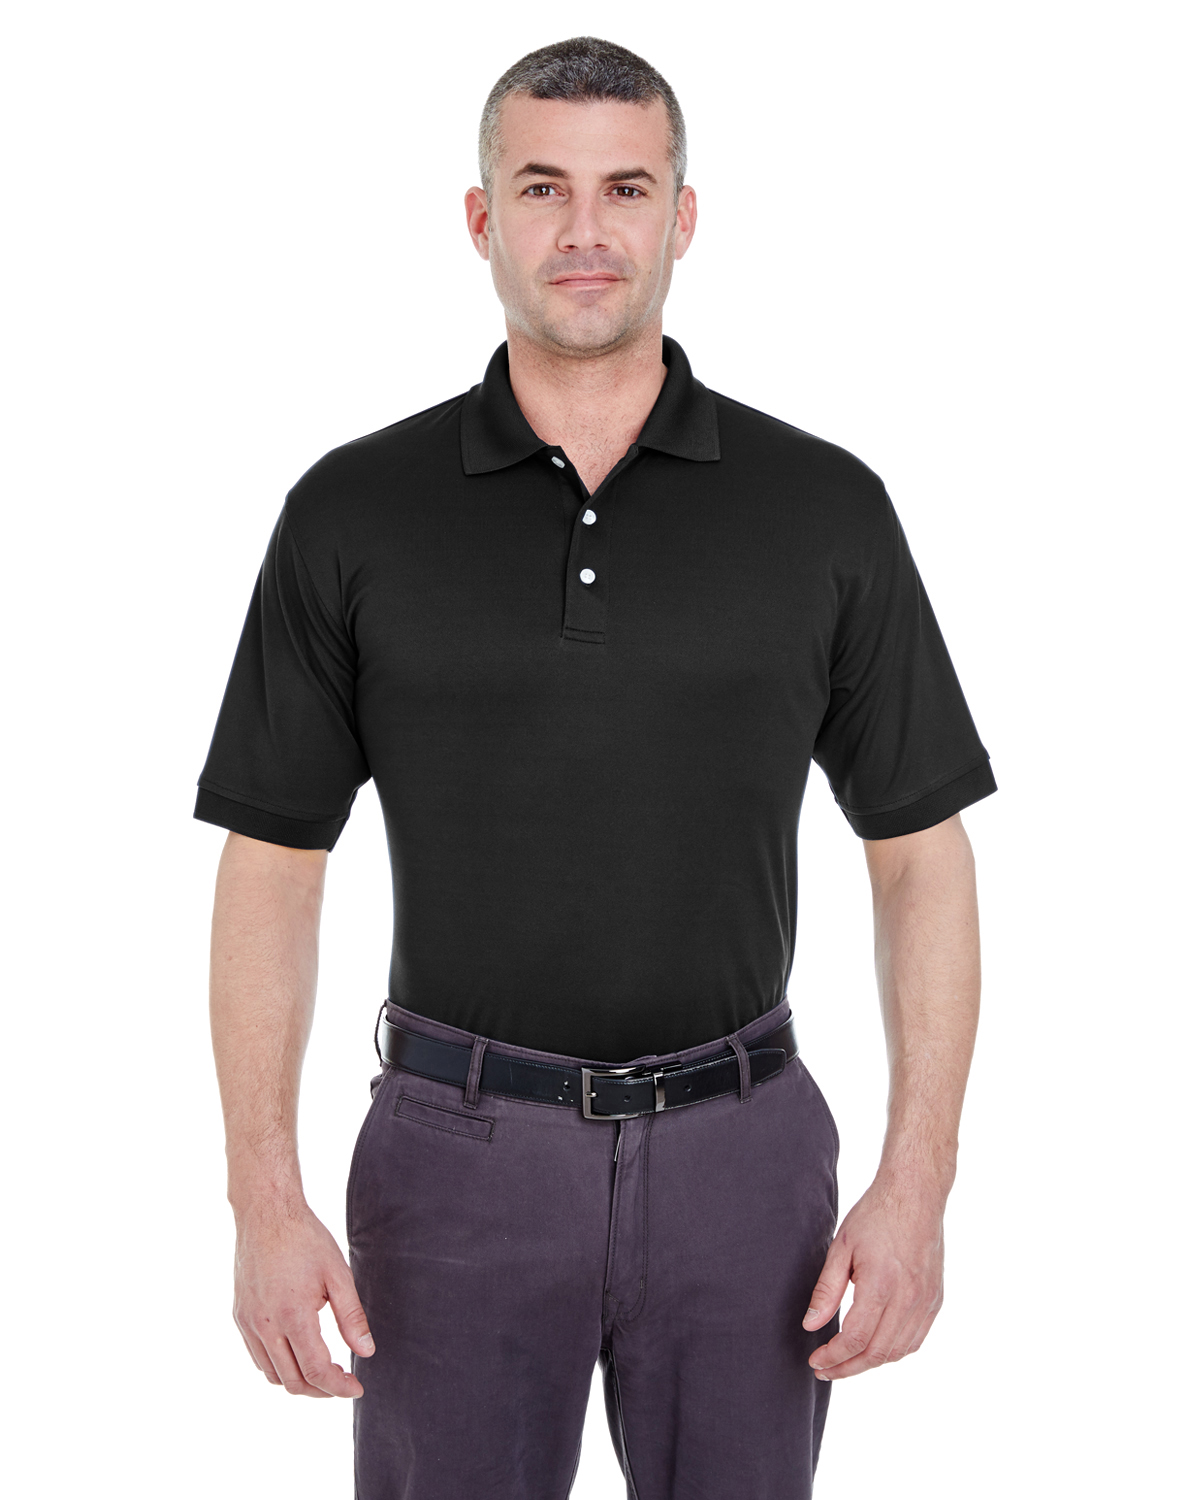 Ultra Club 8315 - Men's Platinum Performance Pique Polo with Temp Control Technology